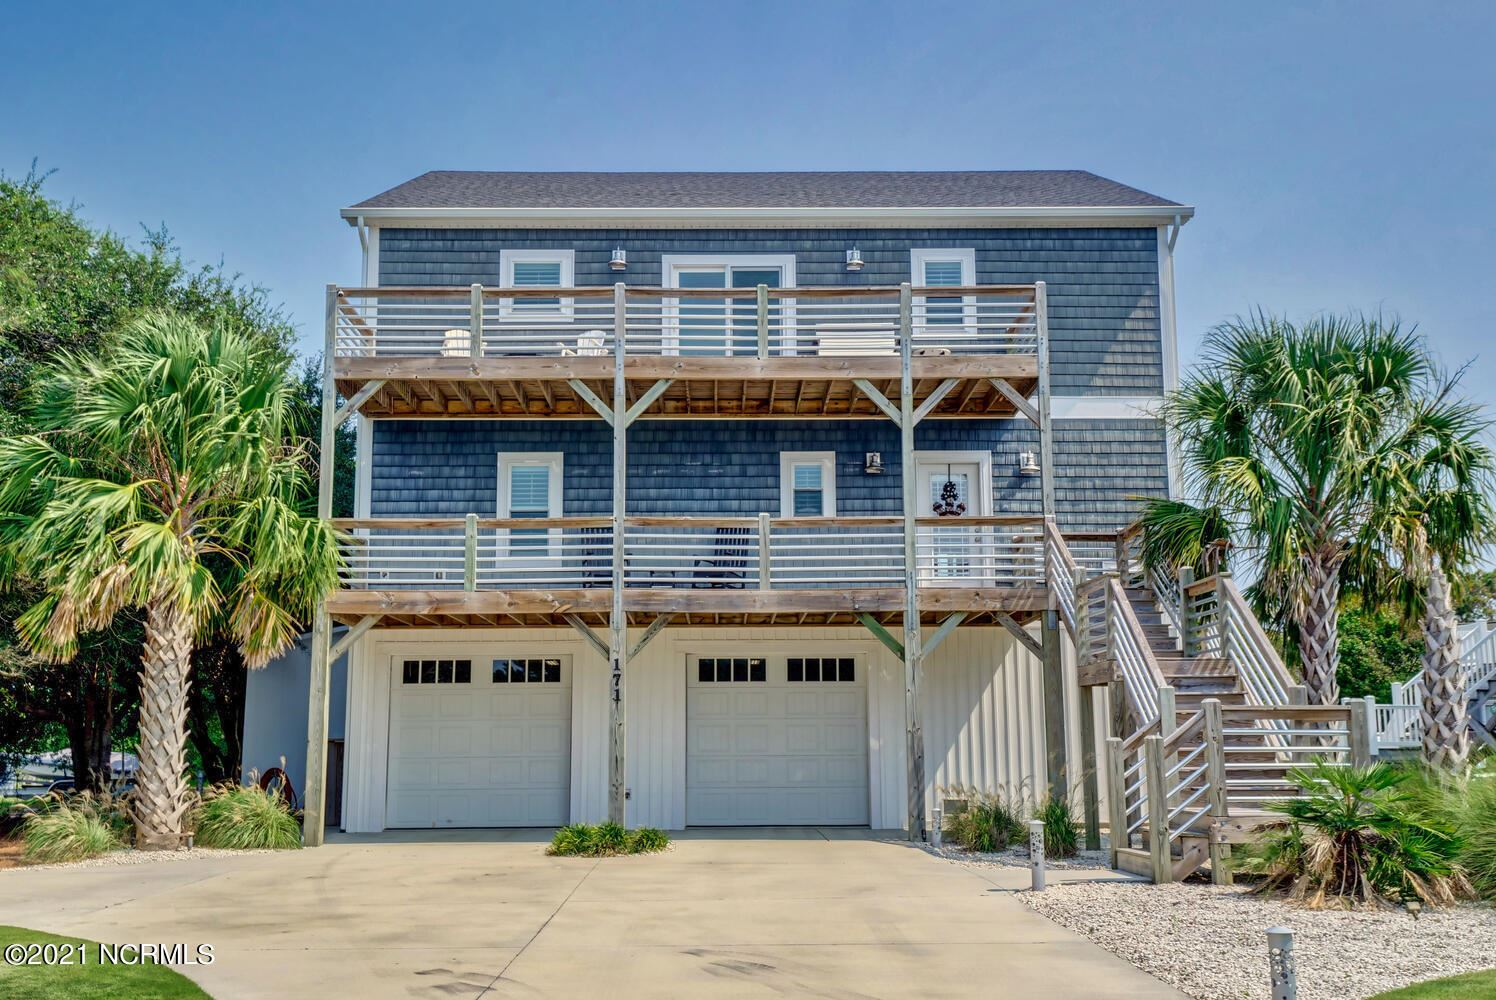 Photo of 171 Alligator Bay, Sneads Ferry, NC 28460 (MLS # 100290642)